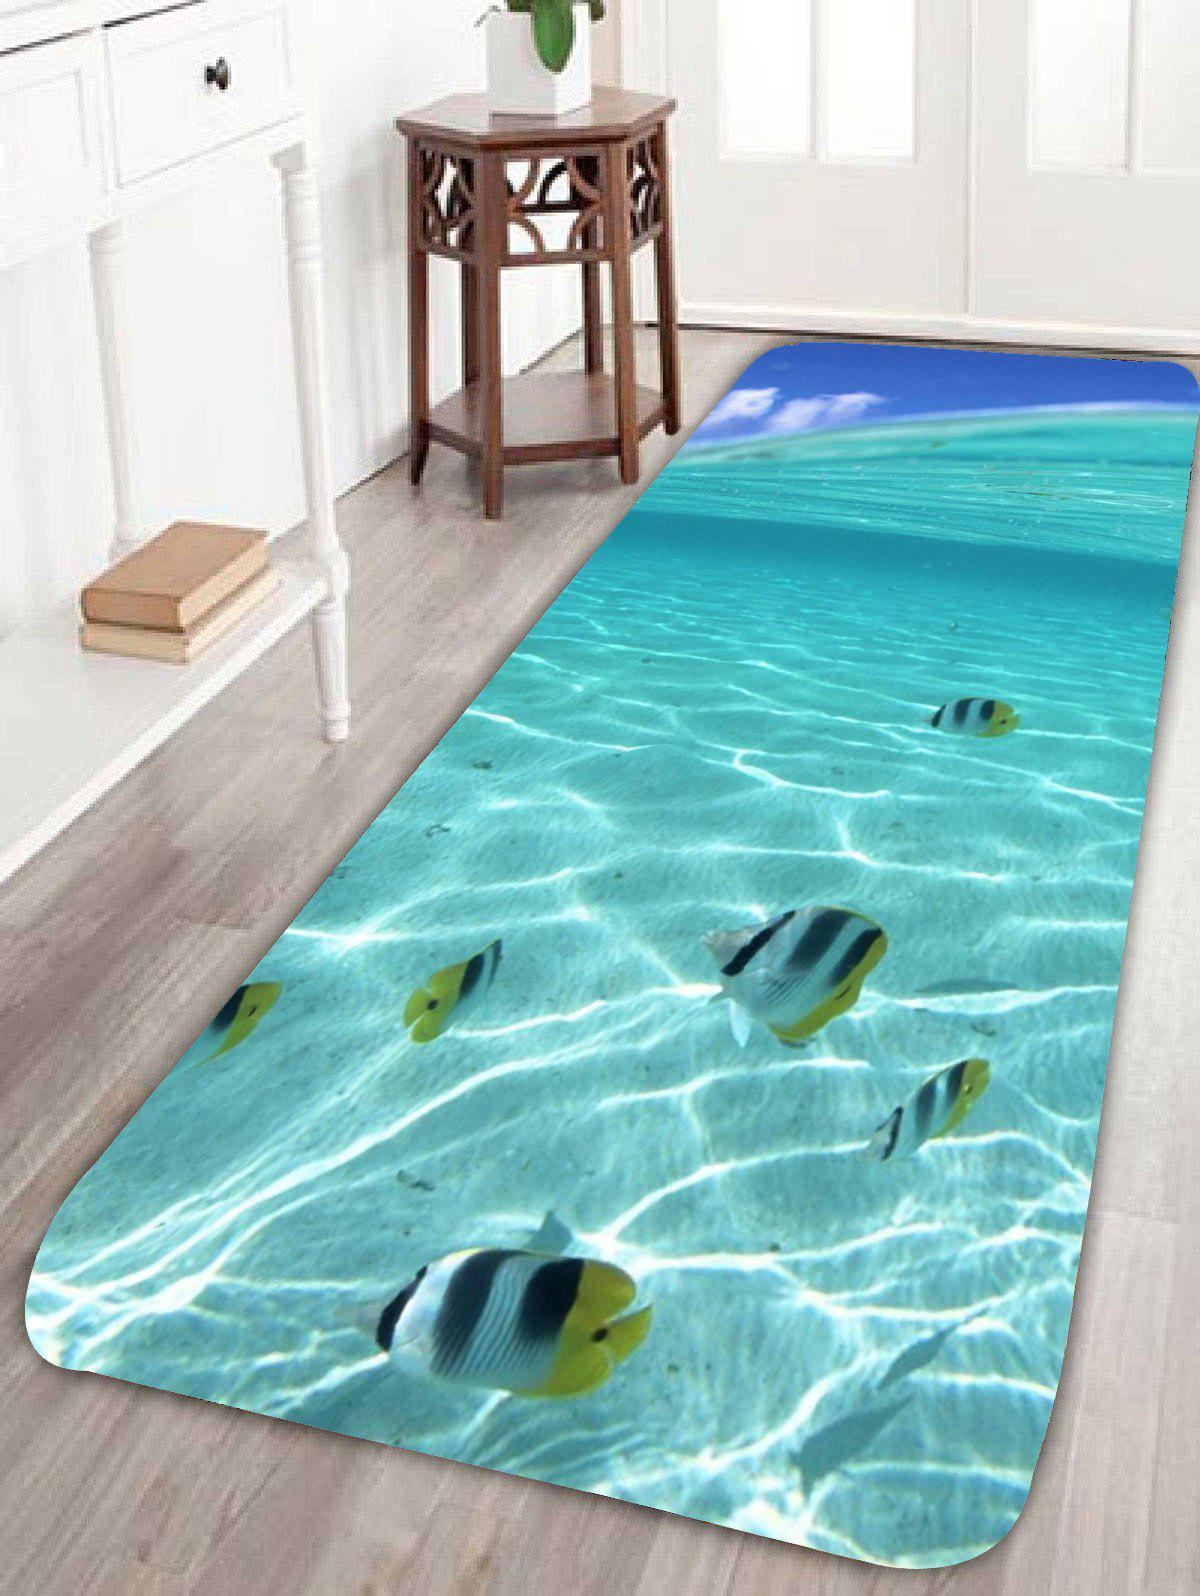 Coral Fleece 3D Fish Underwater Bath RugHOME<br><br>Size: W24 INCH * L71 INCH; Color: BLUE; Products Type: Bath rugs; Materials: Coral FLeece; Pattern: Animal; Style: Trendy; Shape: Rectangle; Package Contents: 1 x Rug;